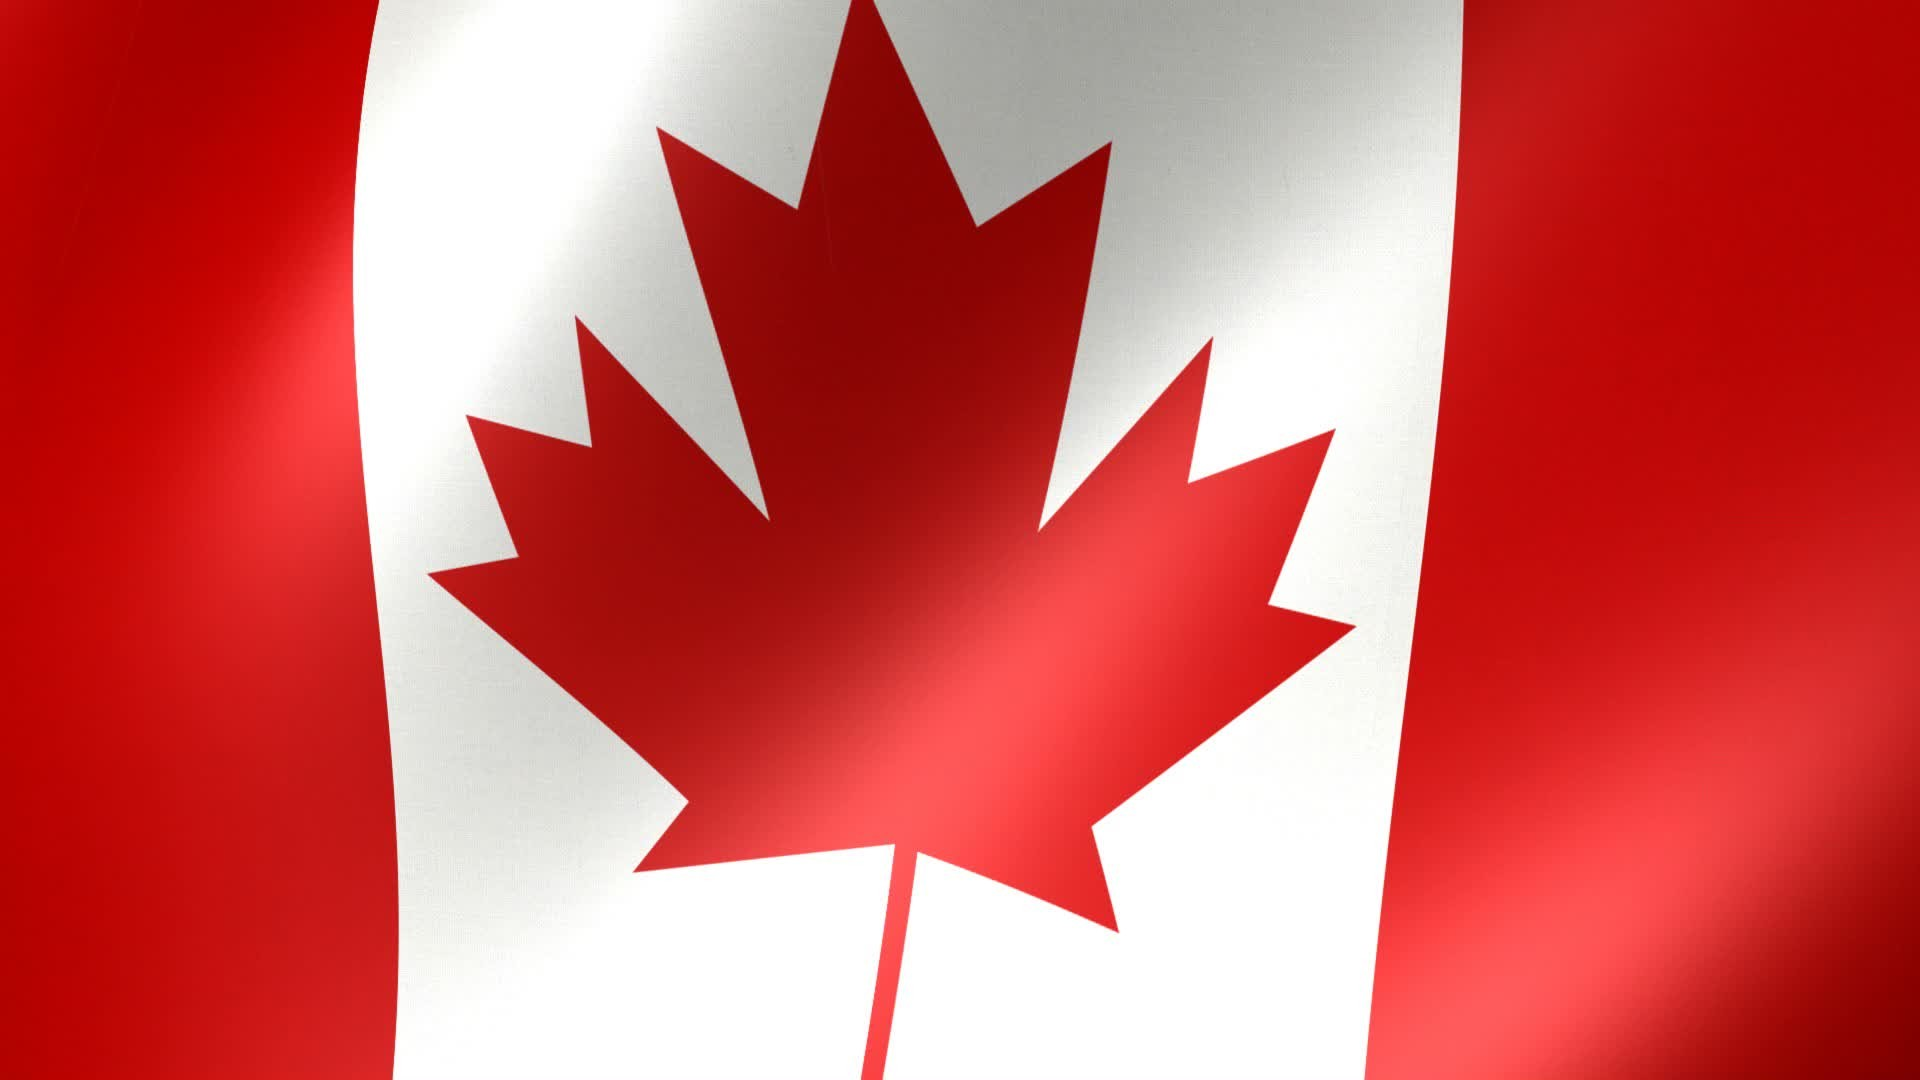 Canadian Flag Wallpaper 56 Images